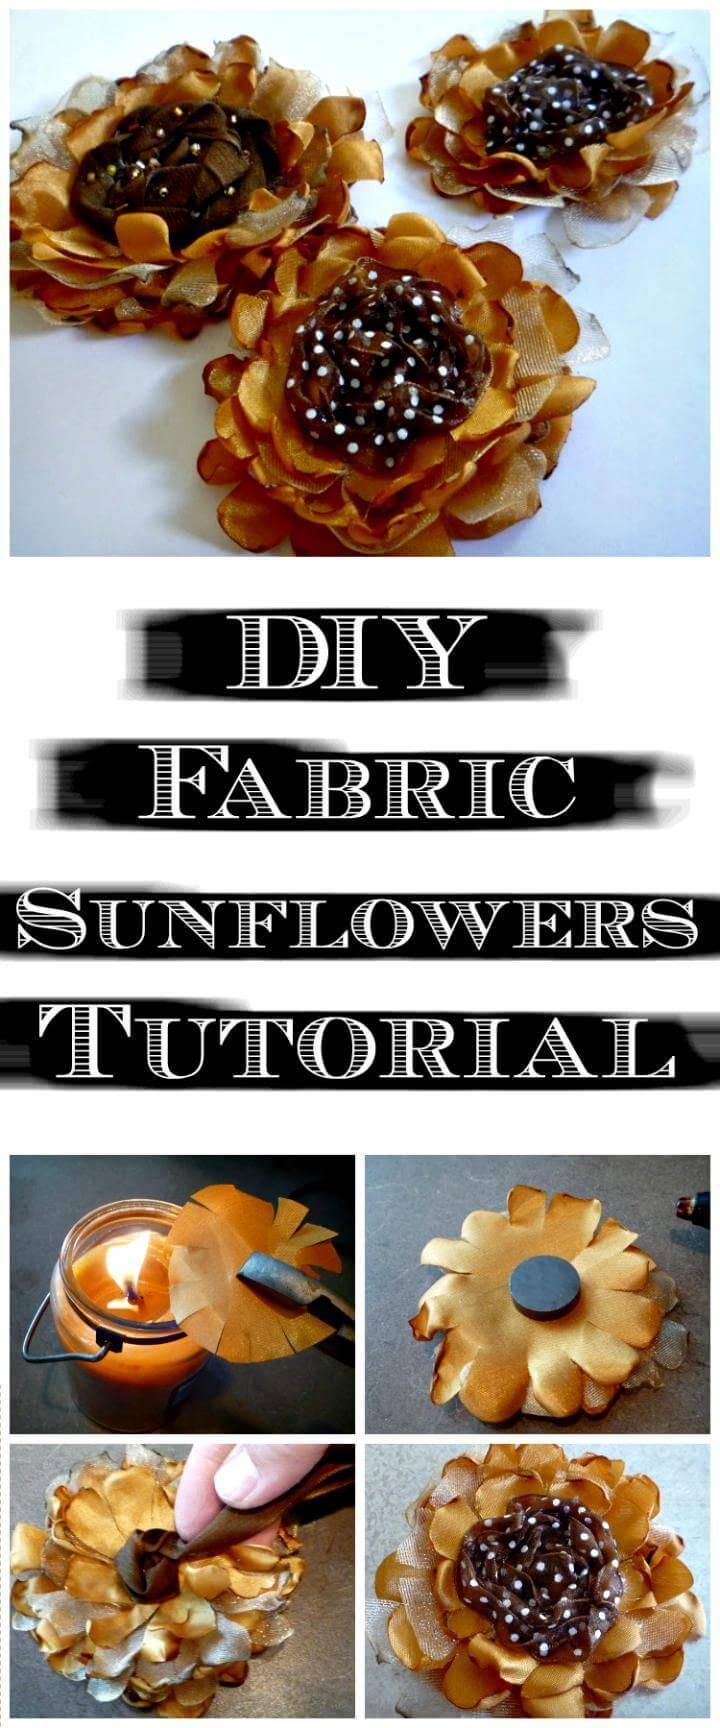 handcrafted fabric sunflowers tutorial